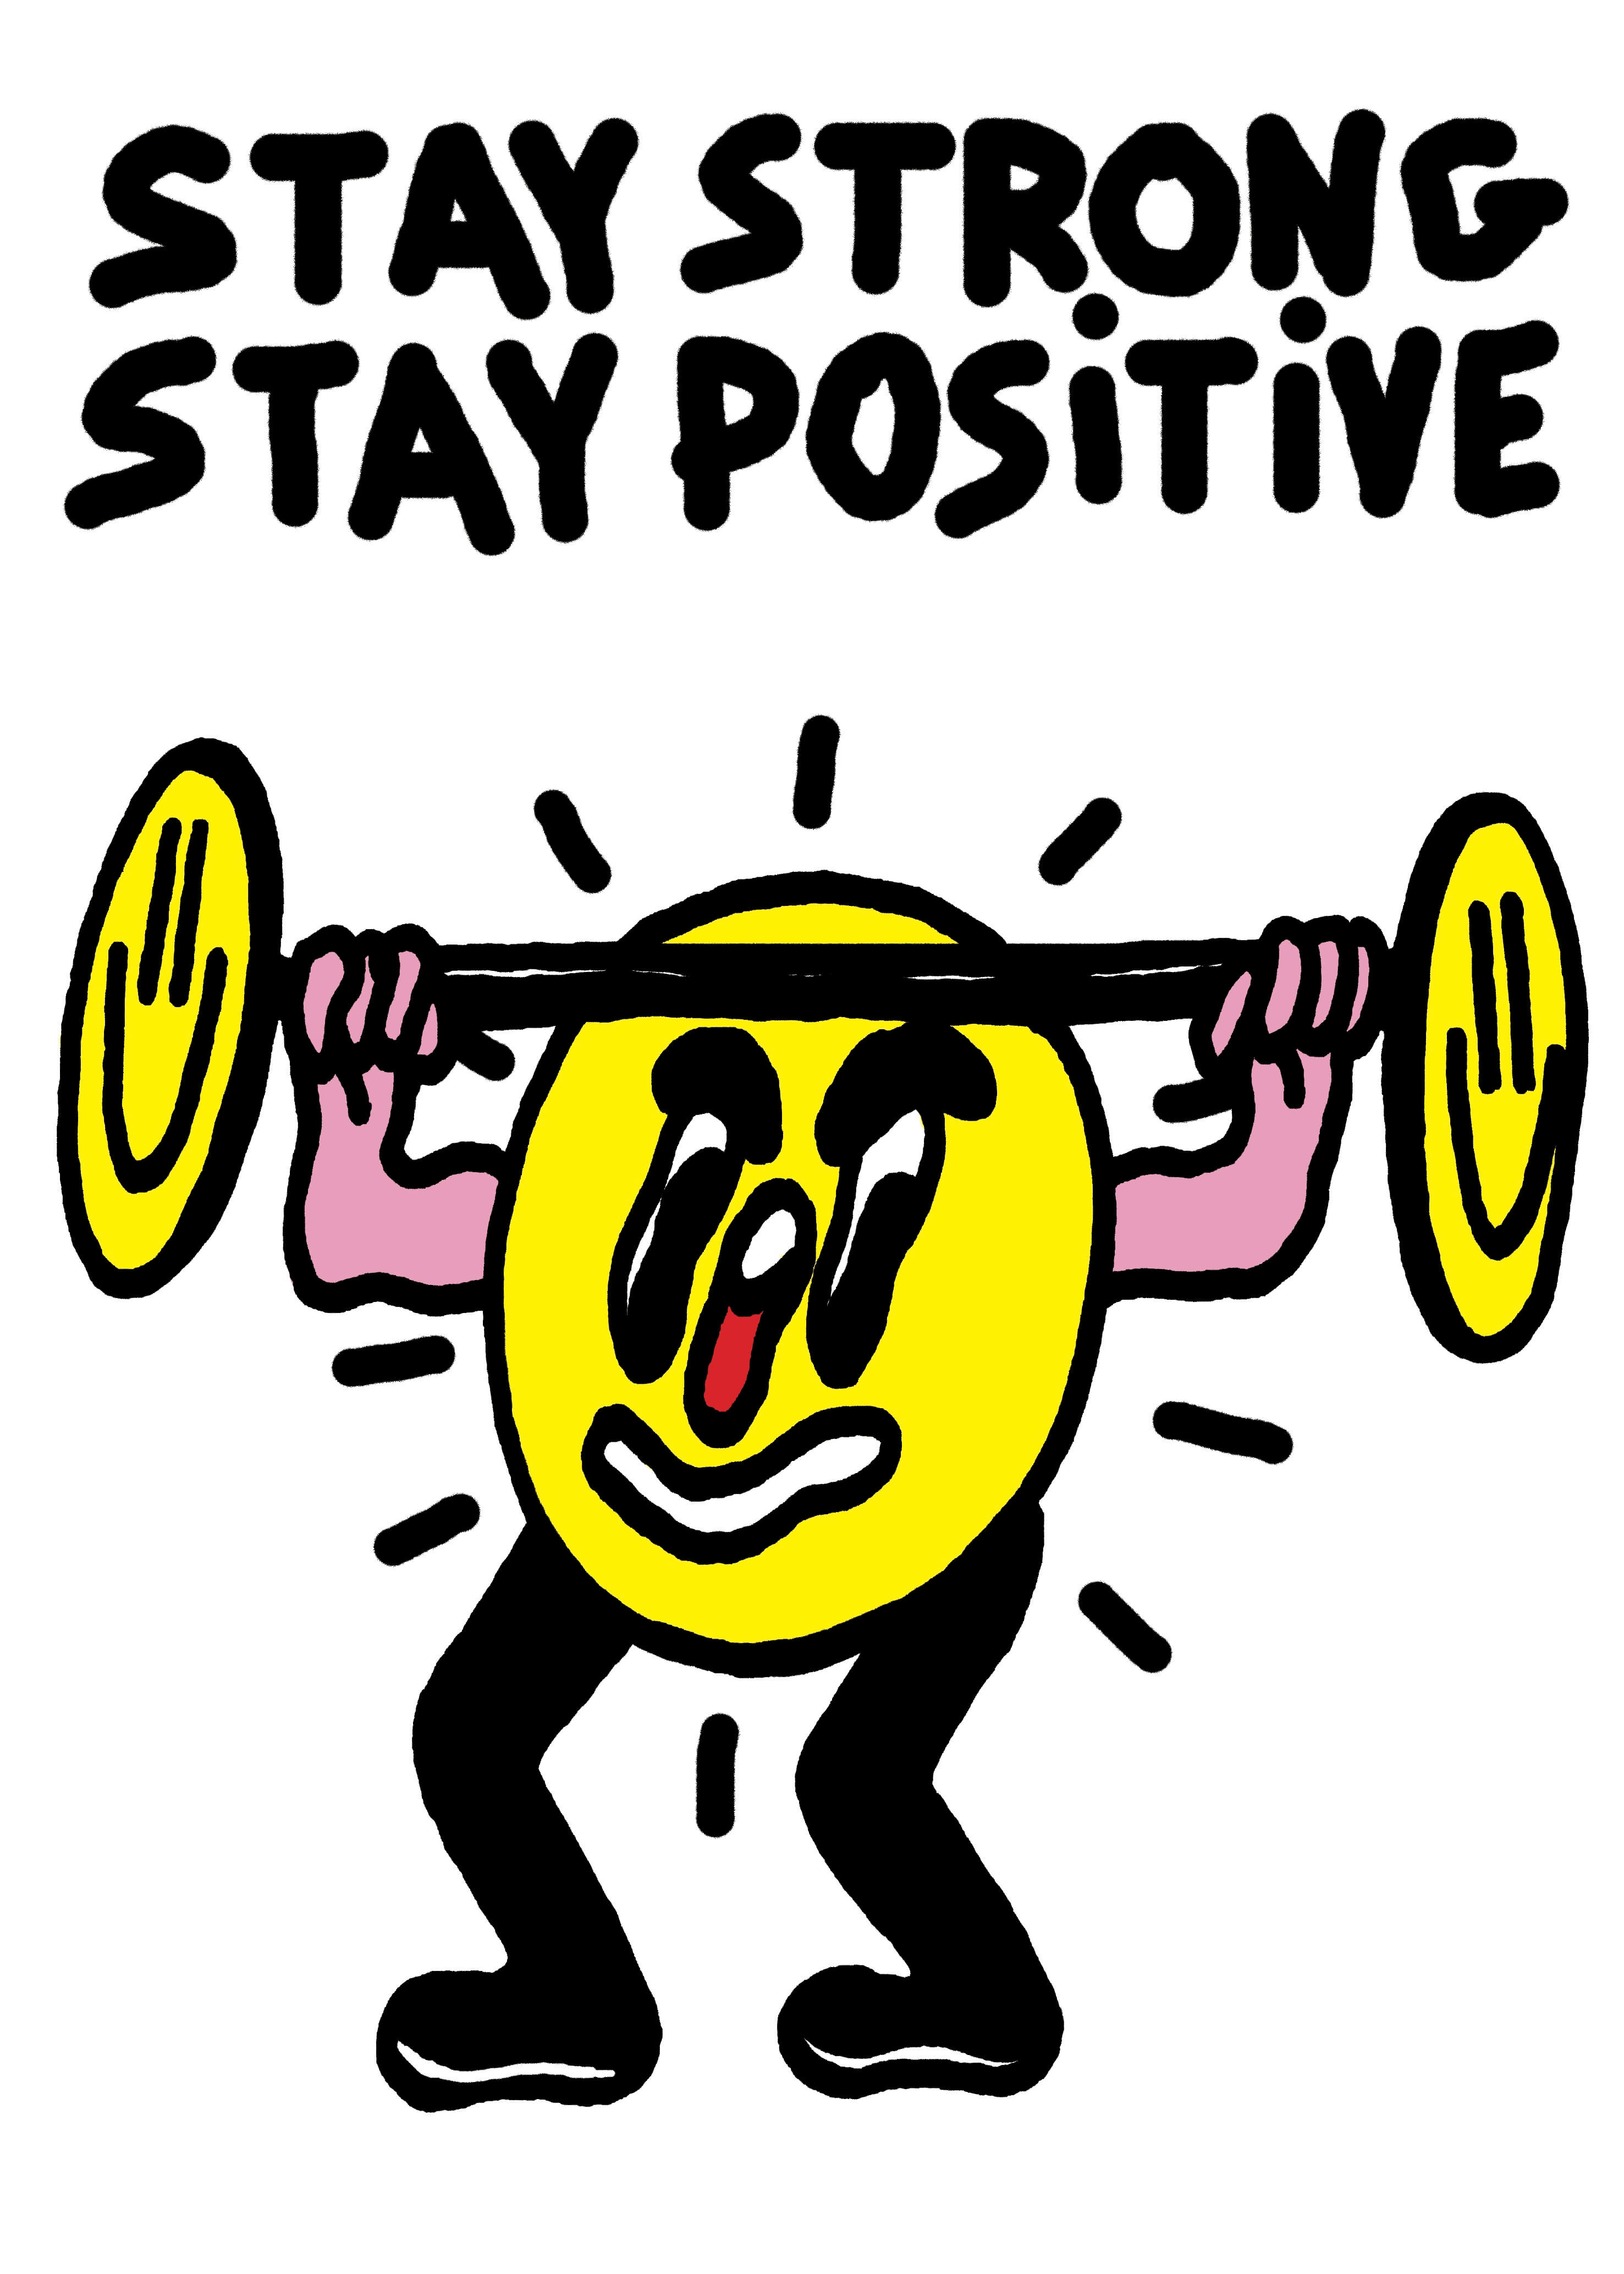 Stay Strong, Stay Positive main image